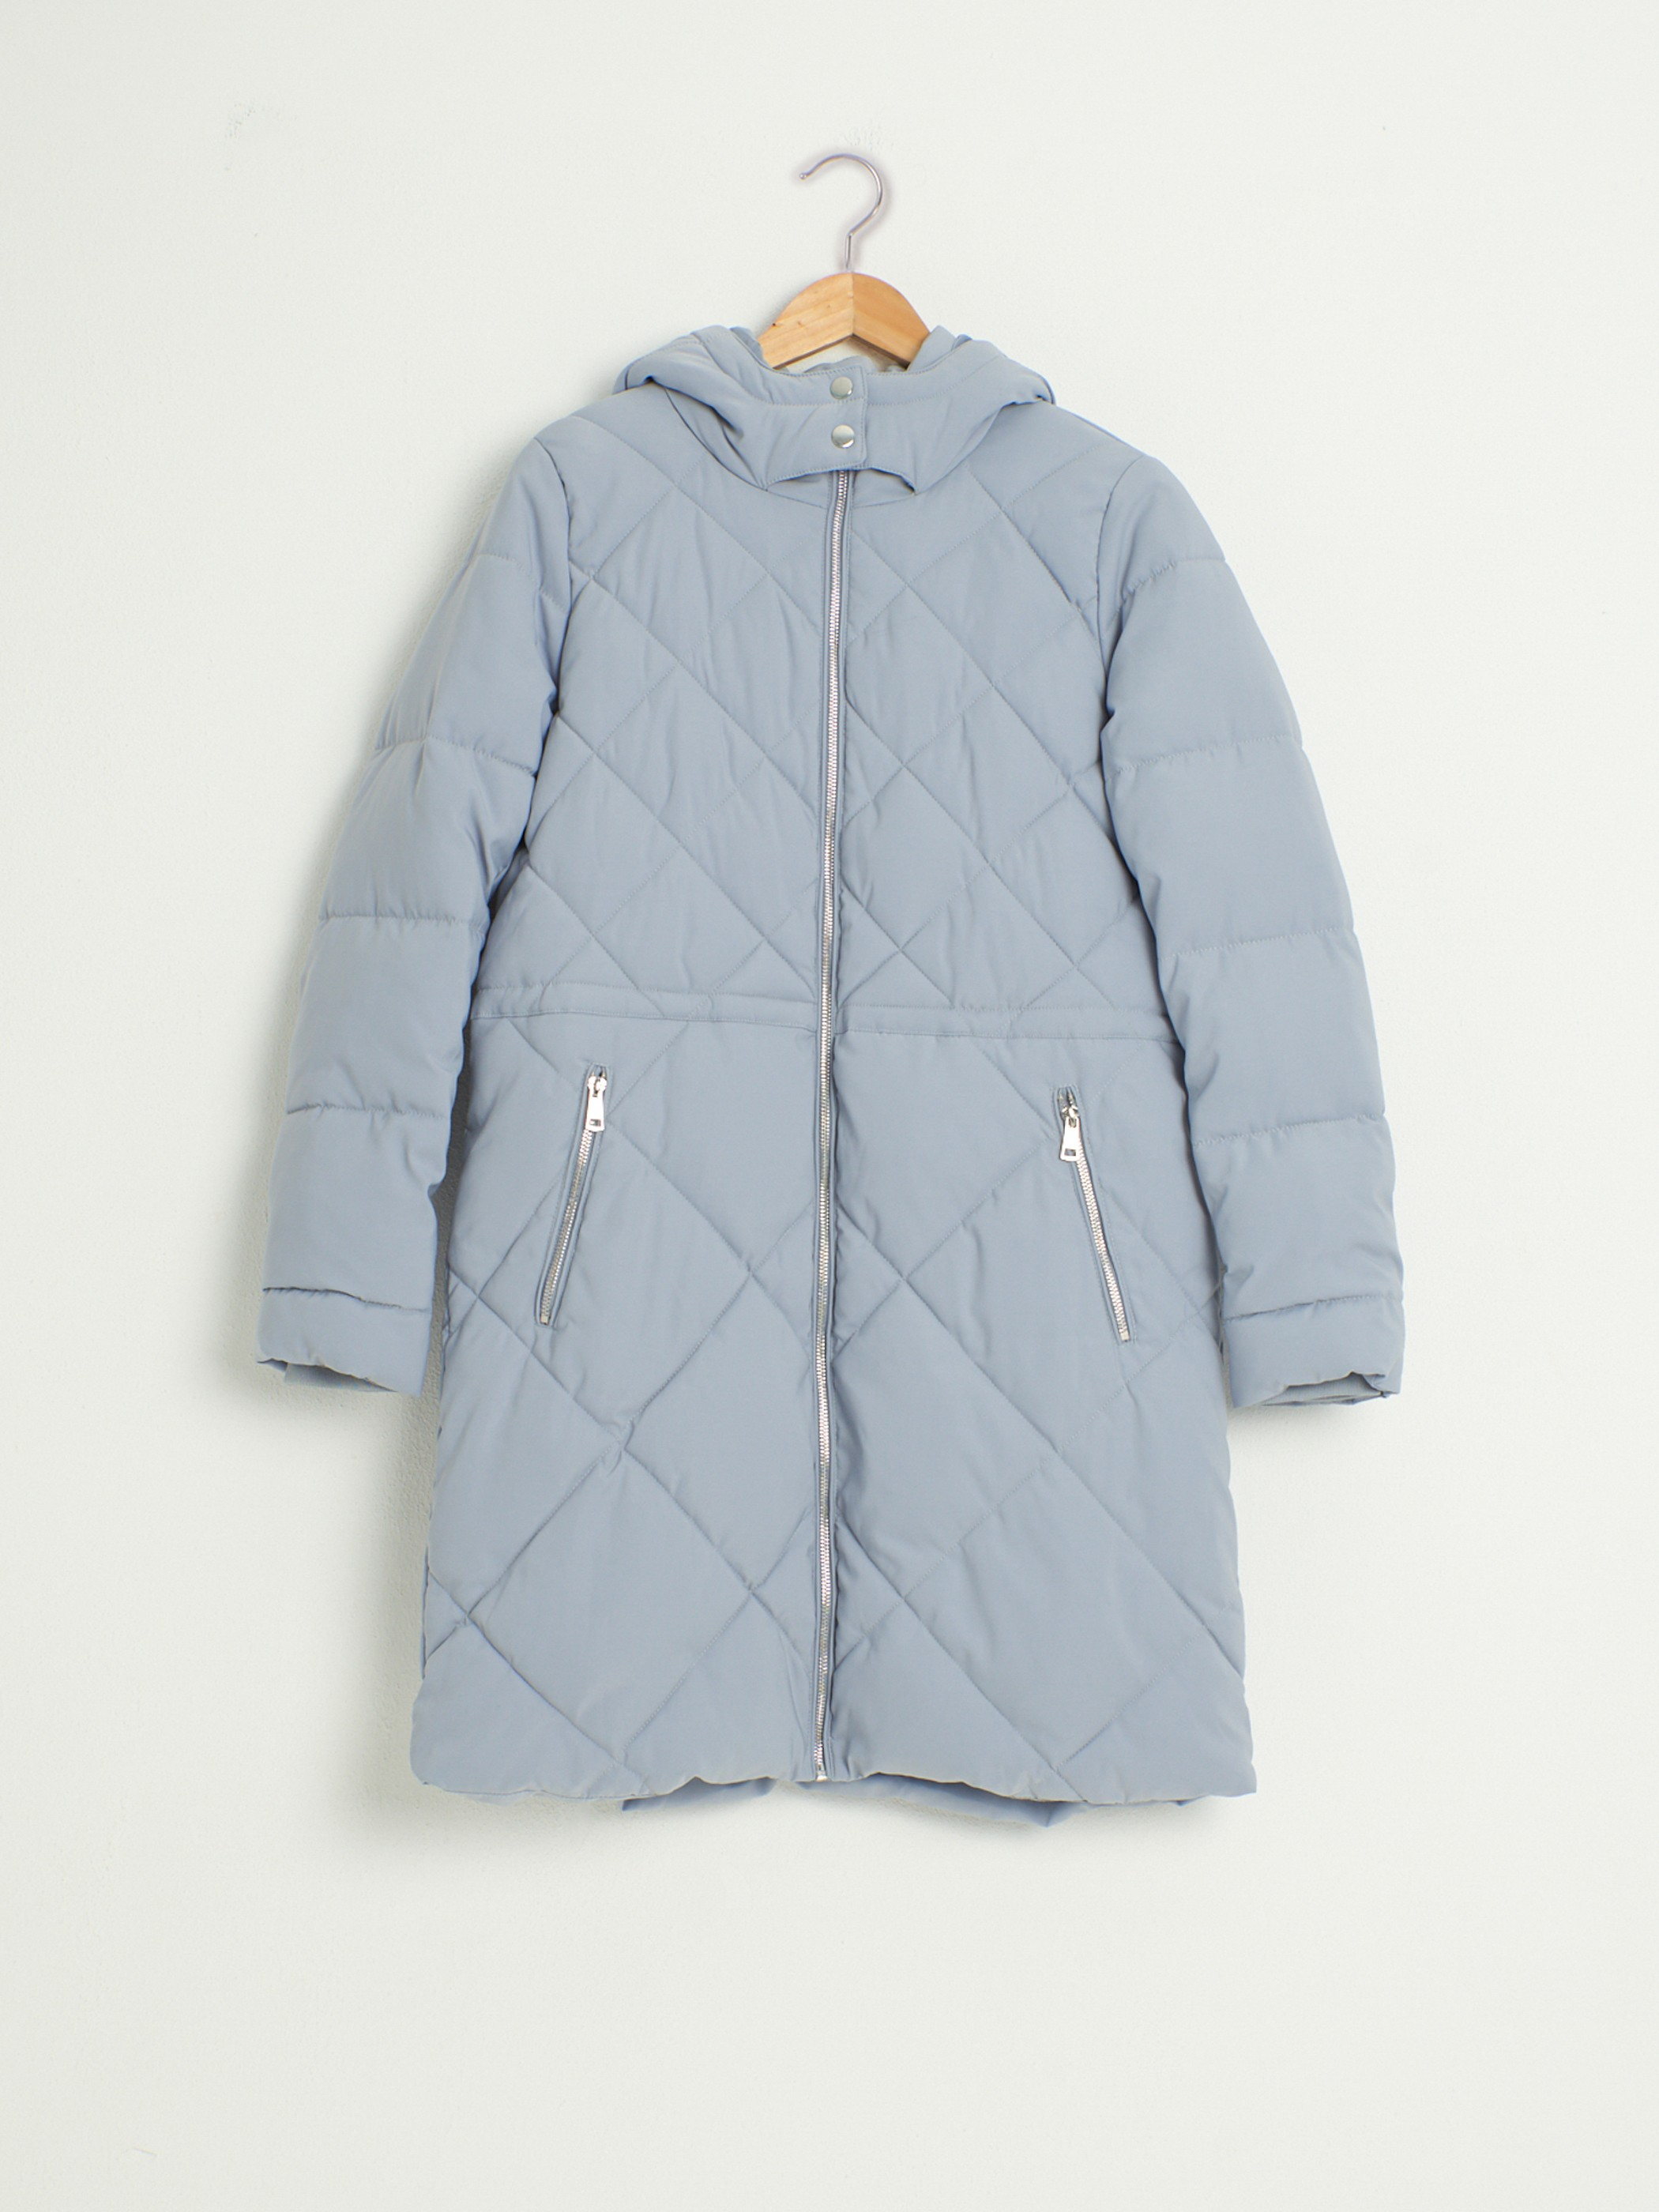 GREY - Quilted Figured Short Coat with Hood - 0W1772Z8